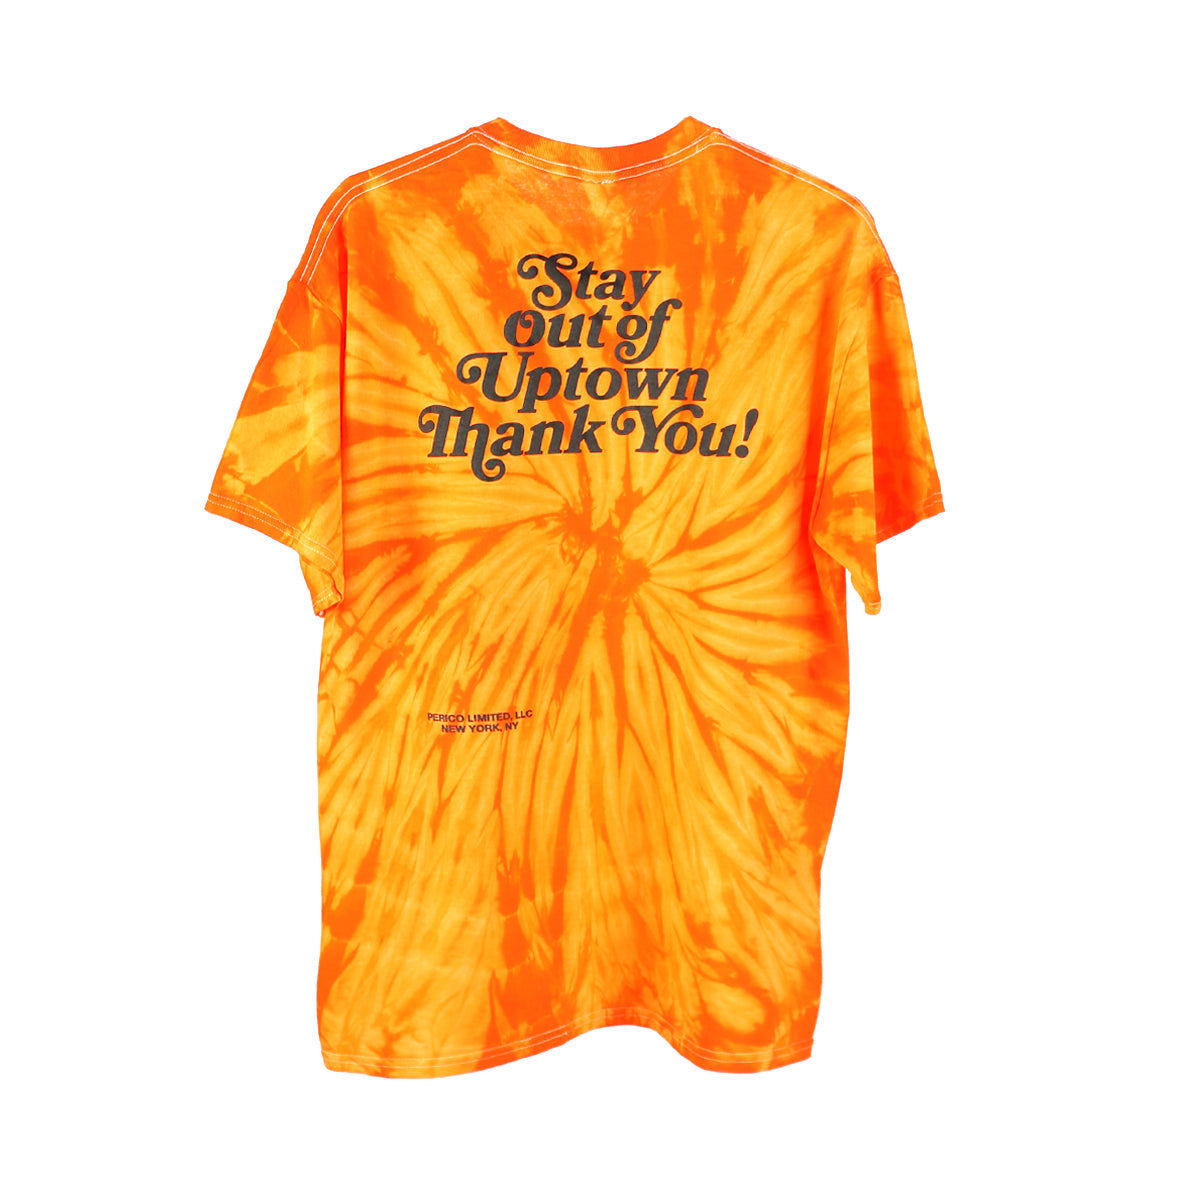 Stay Out of Uptown Tie Dye - Spider Orange